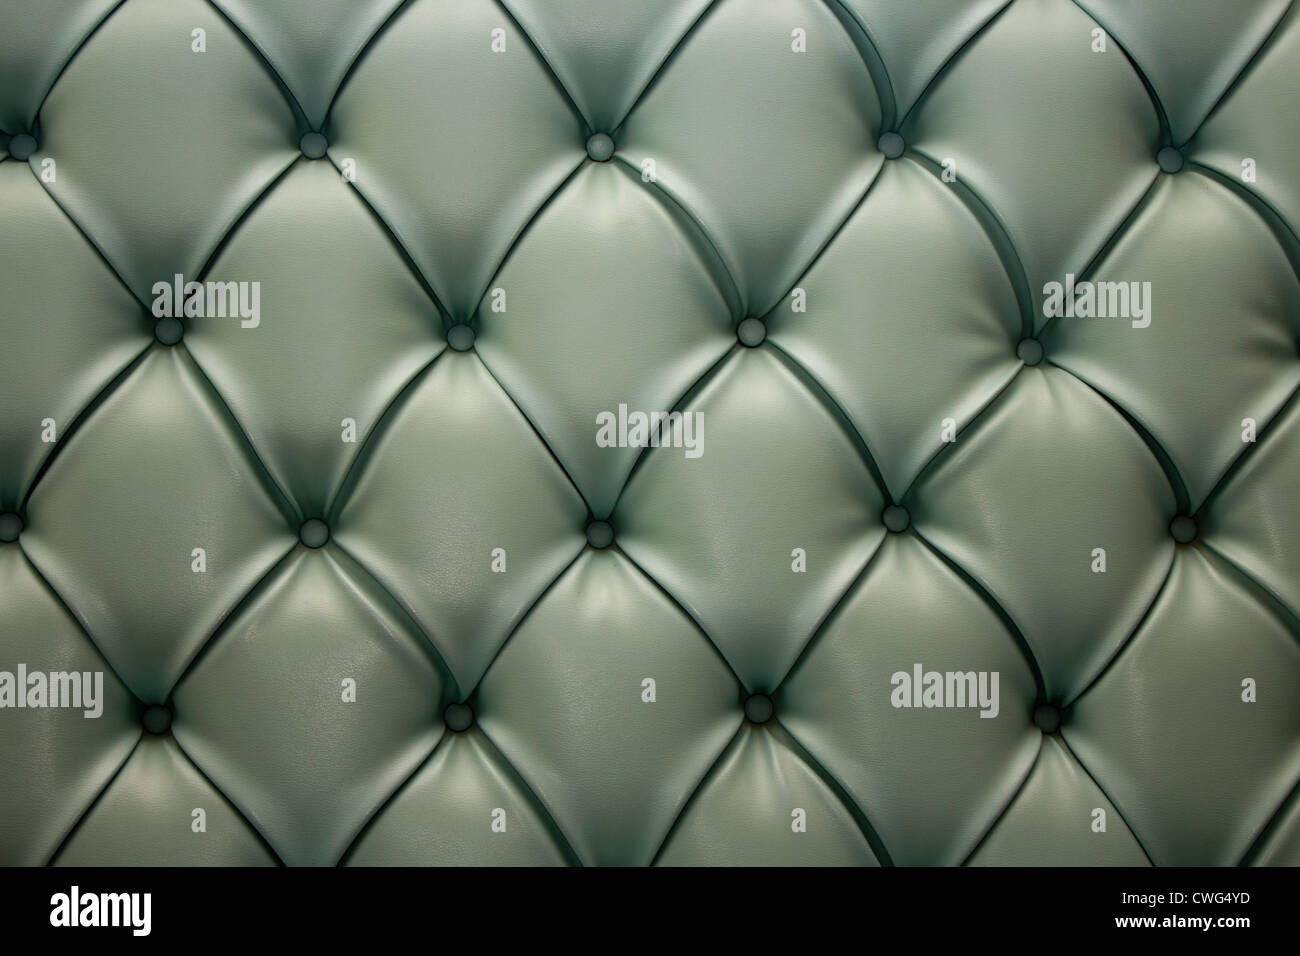 Leather upholstery - Stock Image